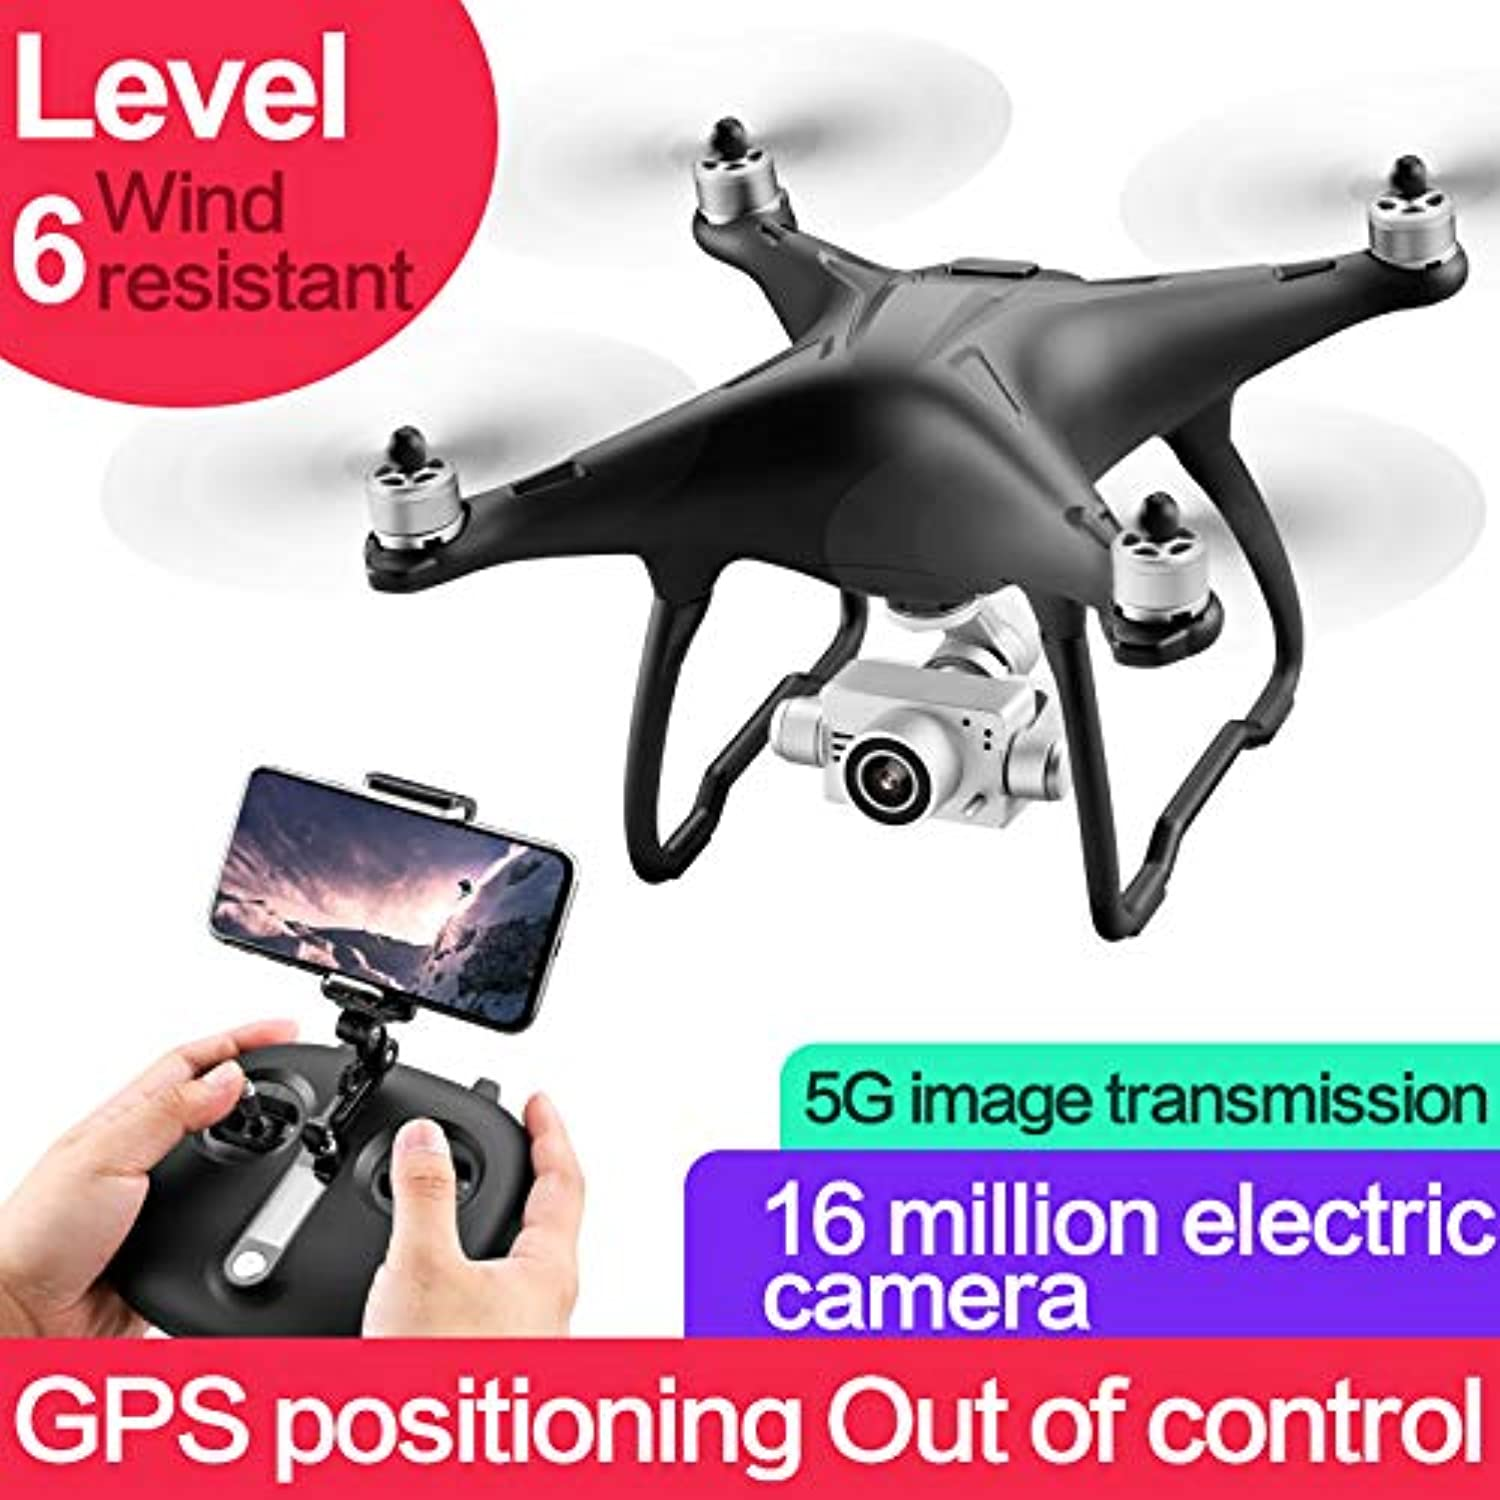 OUYAWEI SMRC Q3 Brushless 5G WIFI FPV Double GPS 1080P Wide Angle Camera Self-Stabilizing Gimbal Altitude Mode RC Drone Quadcopter RTF 3 battery